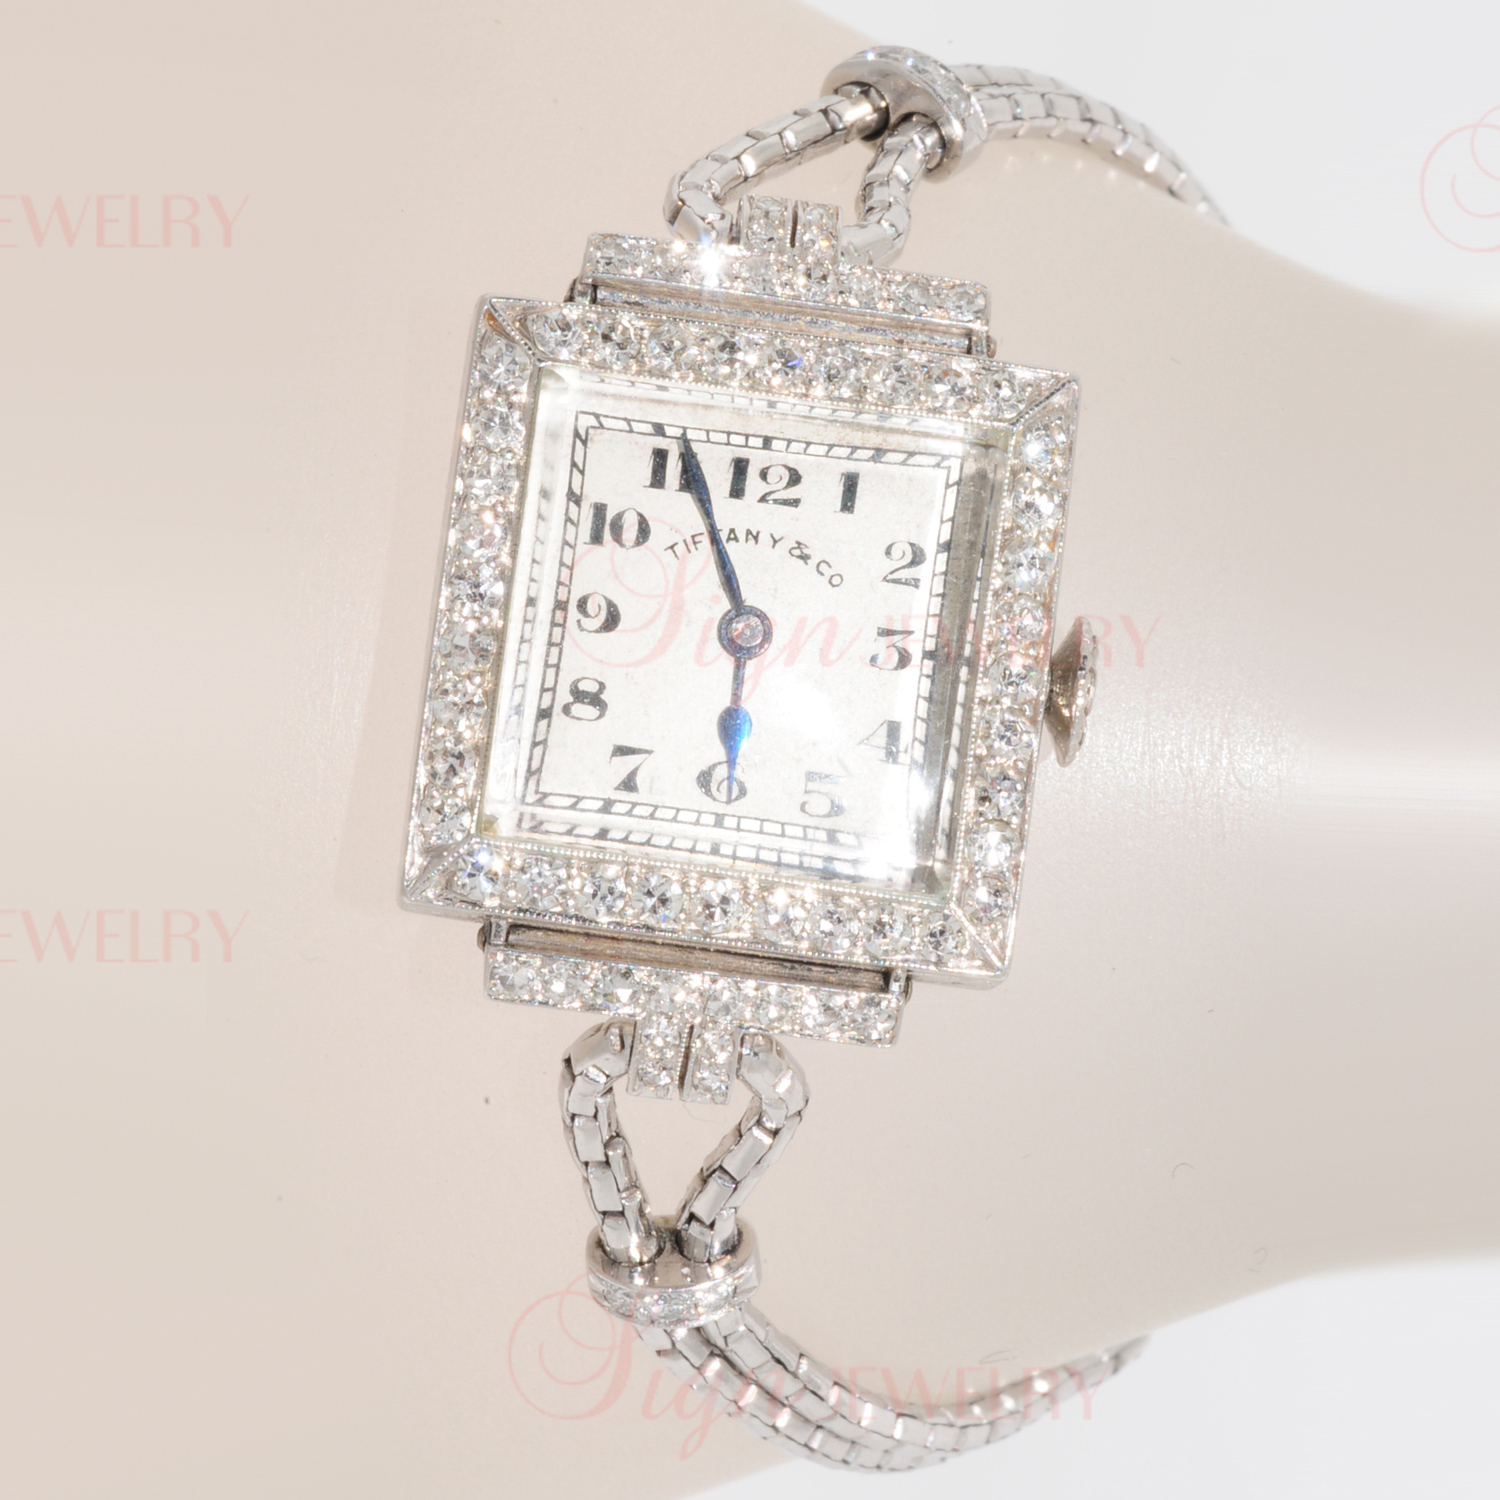 TIFFANY & CO. Art-Deco Platinum Diamond Watch